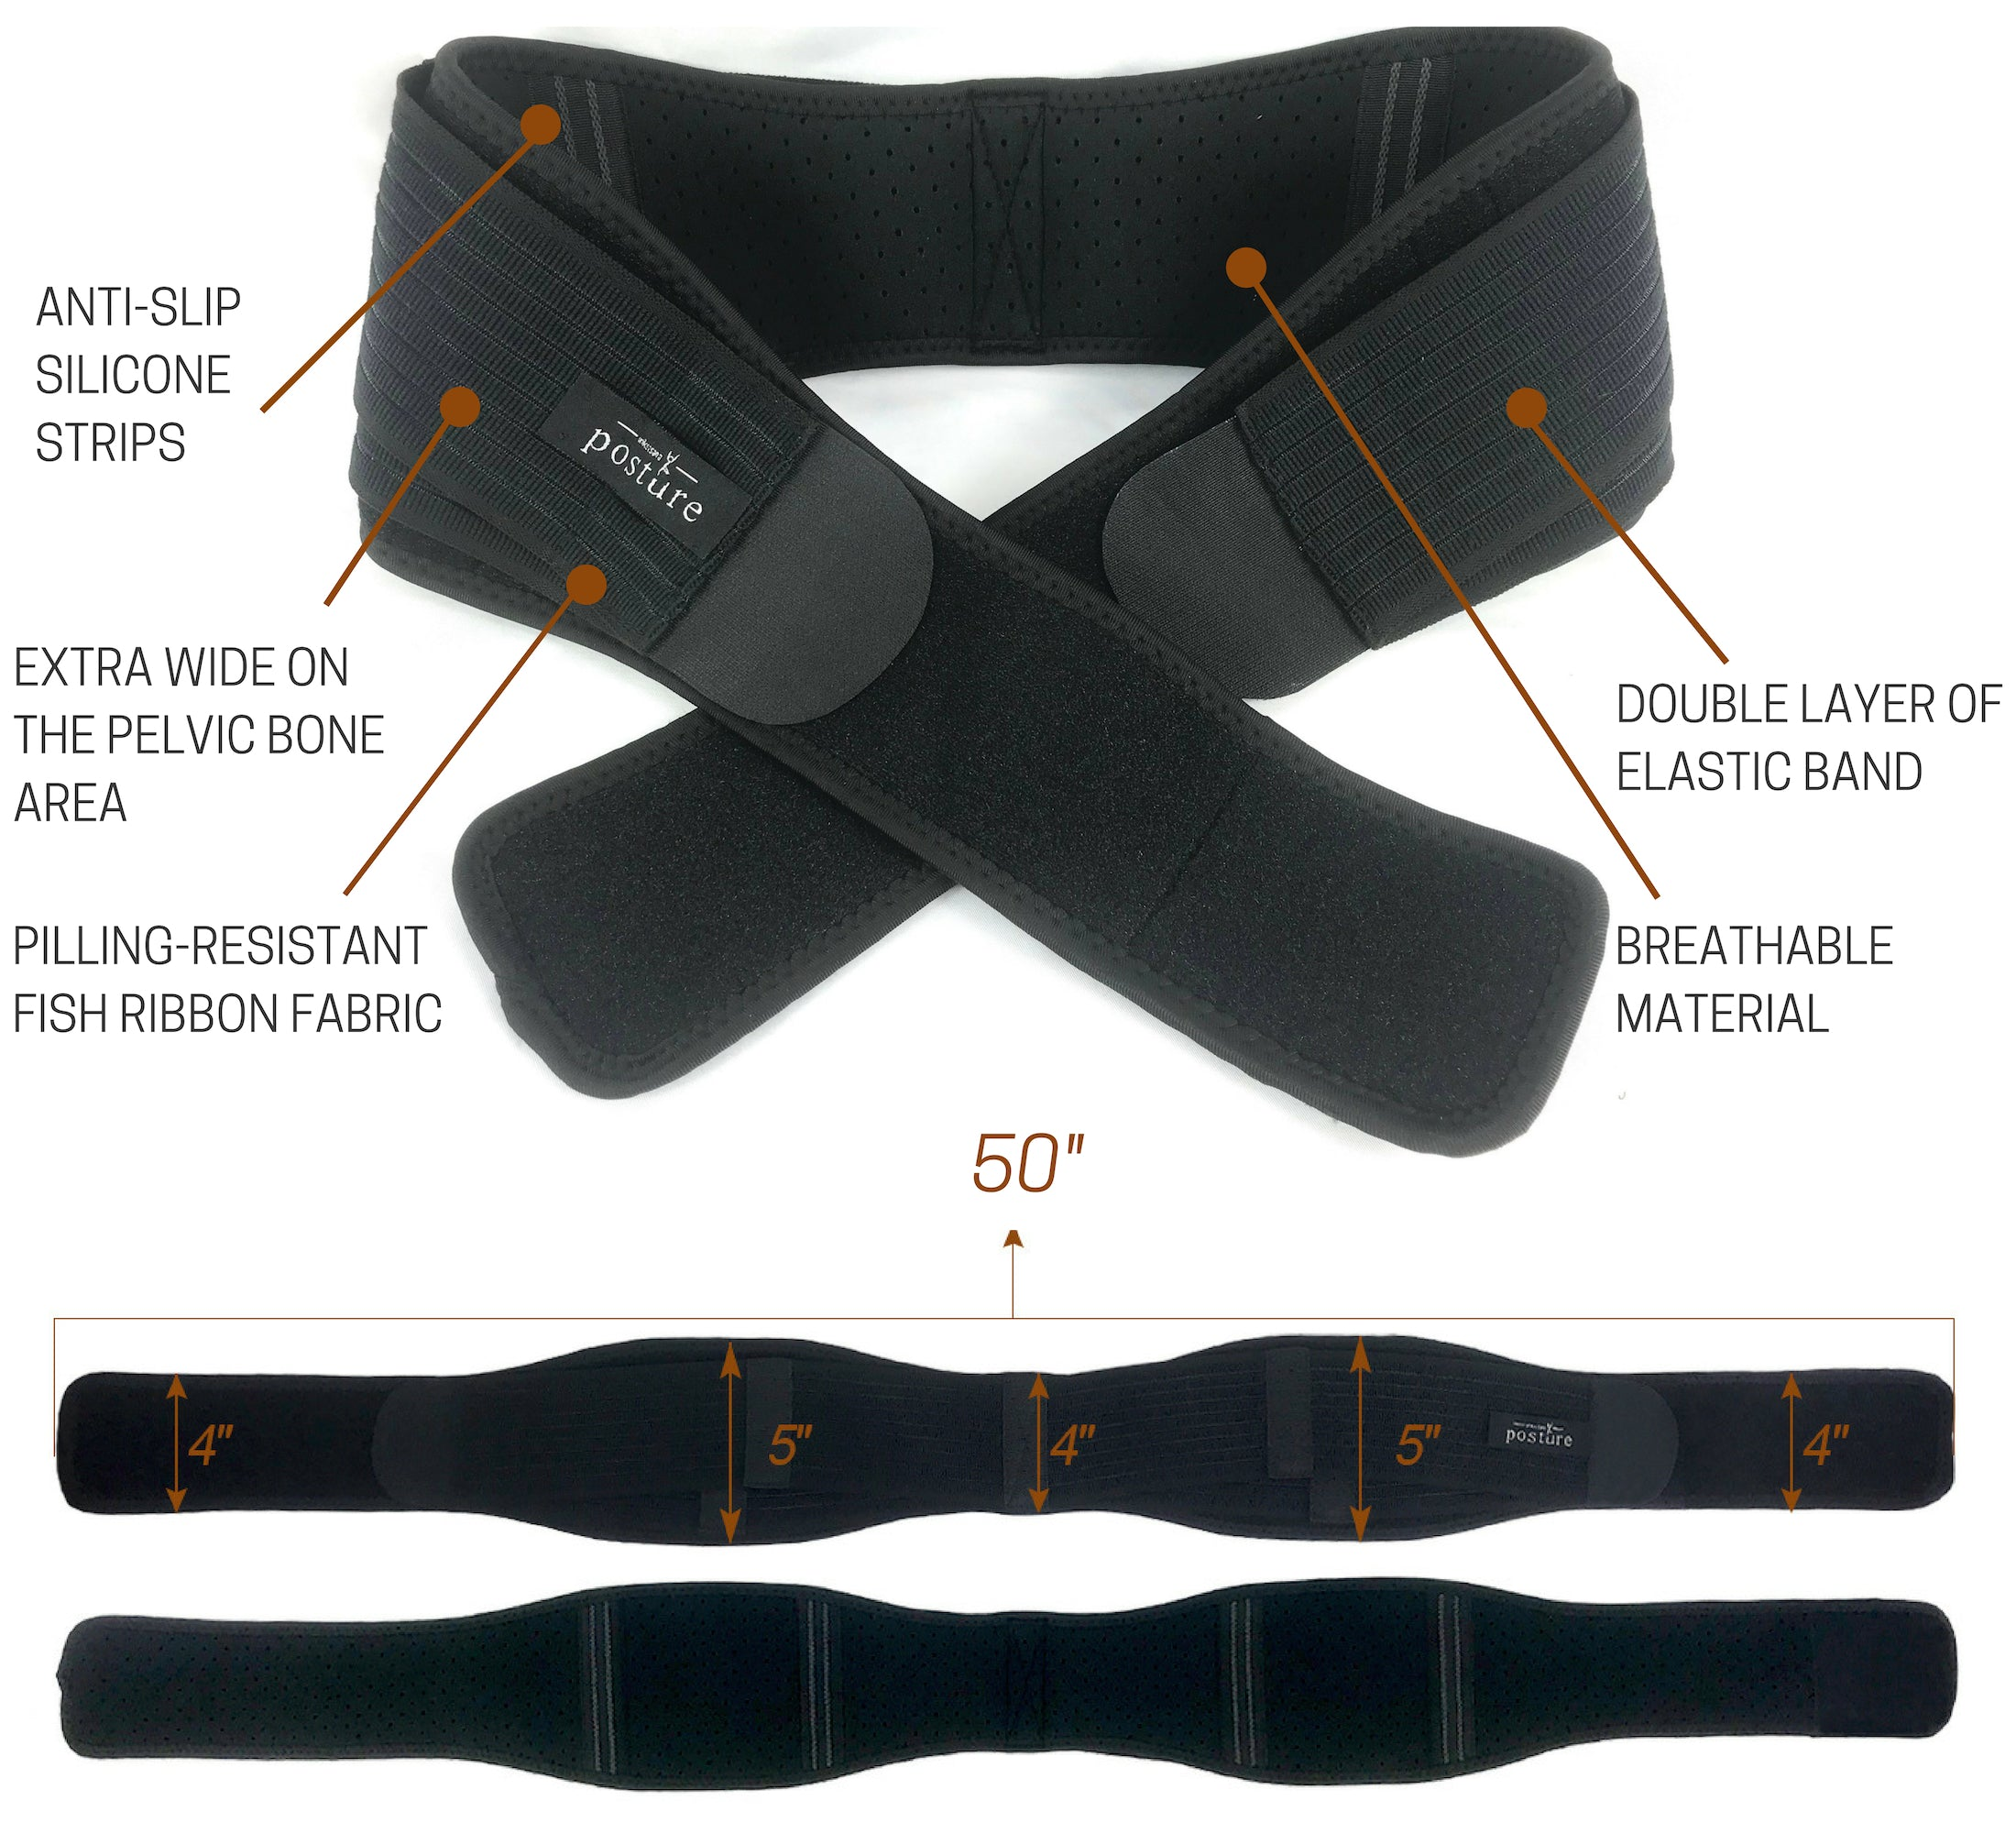 Si Belt that Alleviates Pelvic, Back and Leg and Nerve Pain